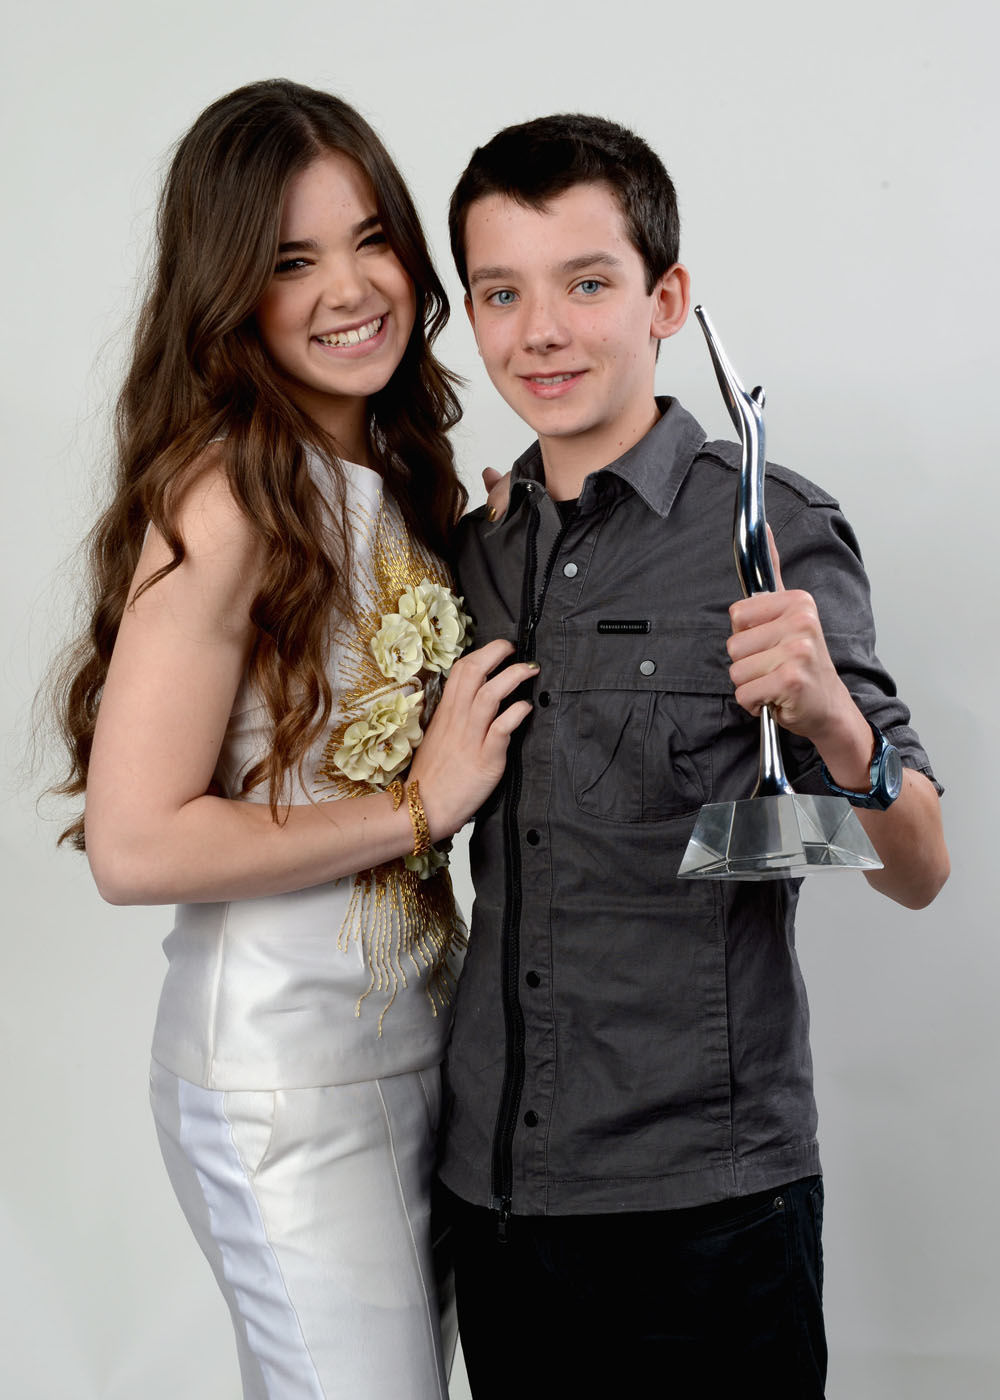 butterfield dating site Welcome to asa butterfield daily (asabutterfieldedtumblrcom), your number one source for everything about the british actor asa butterfield,.